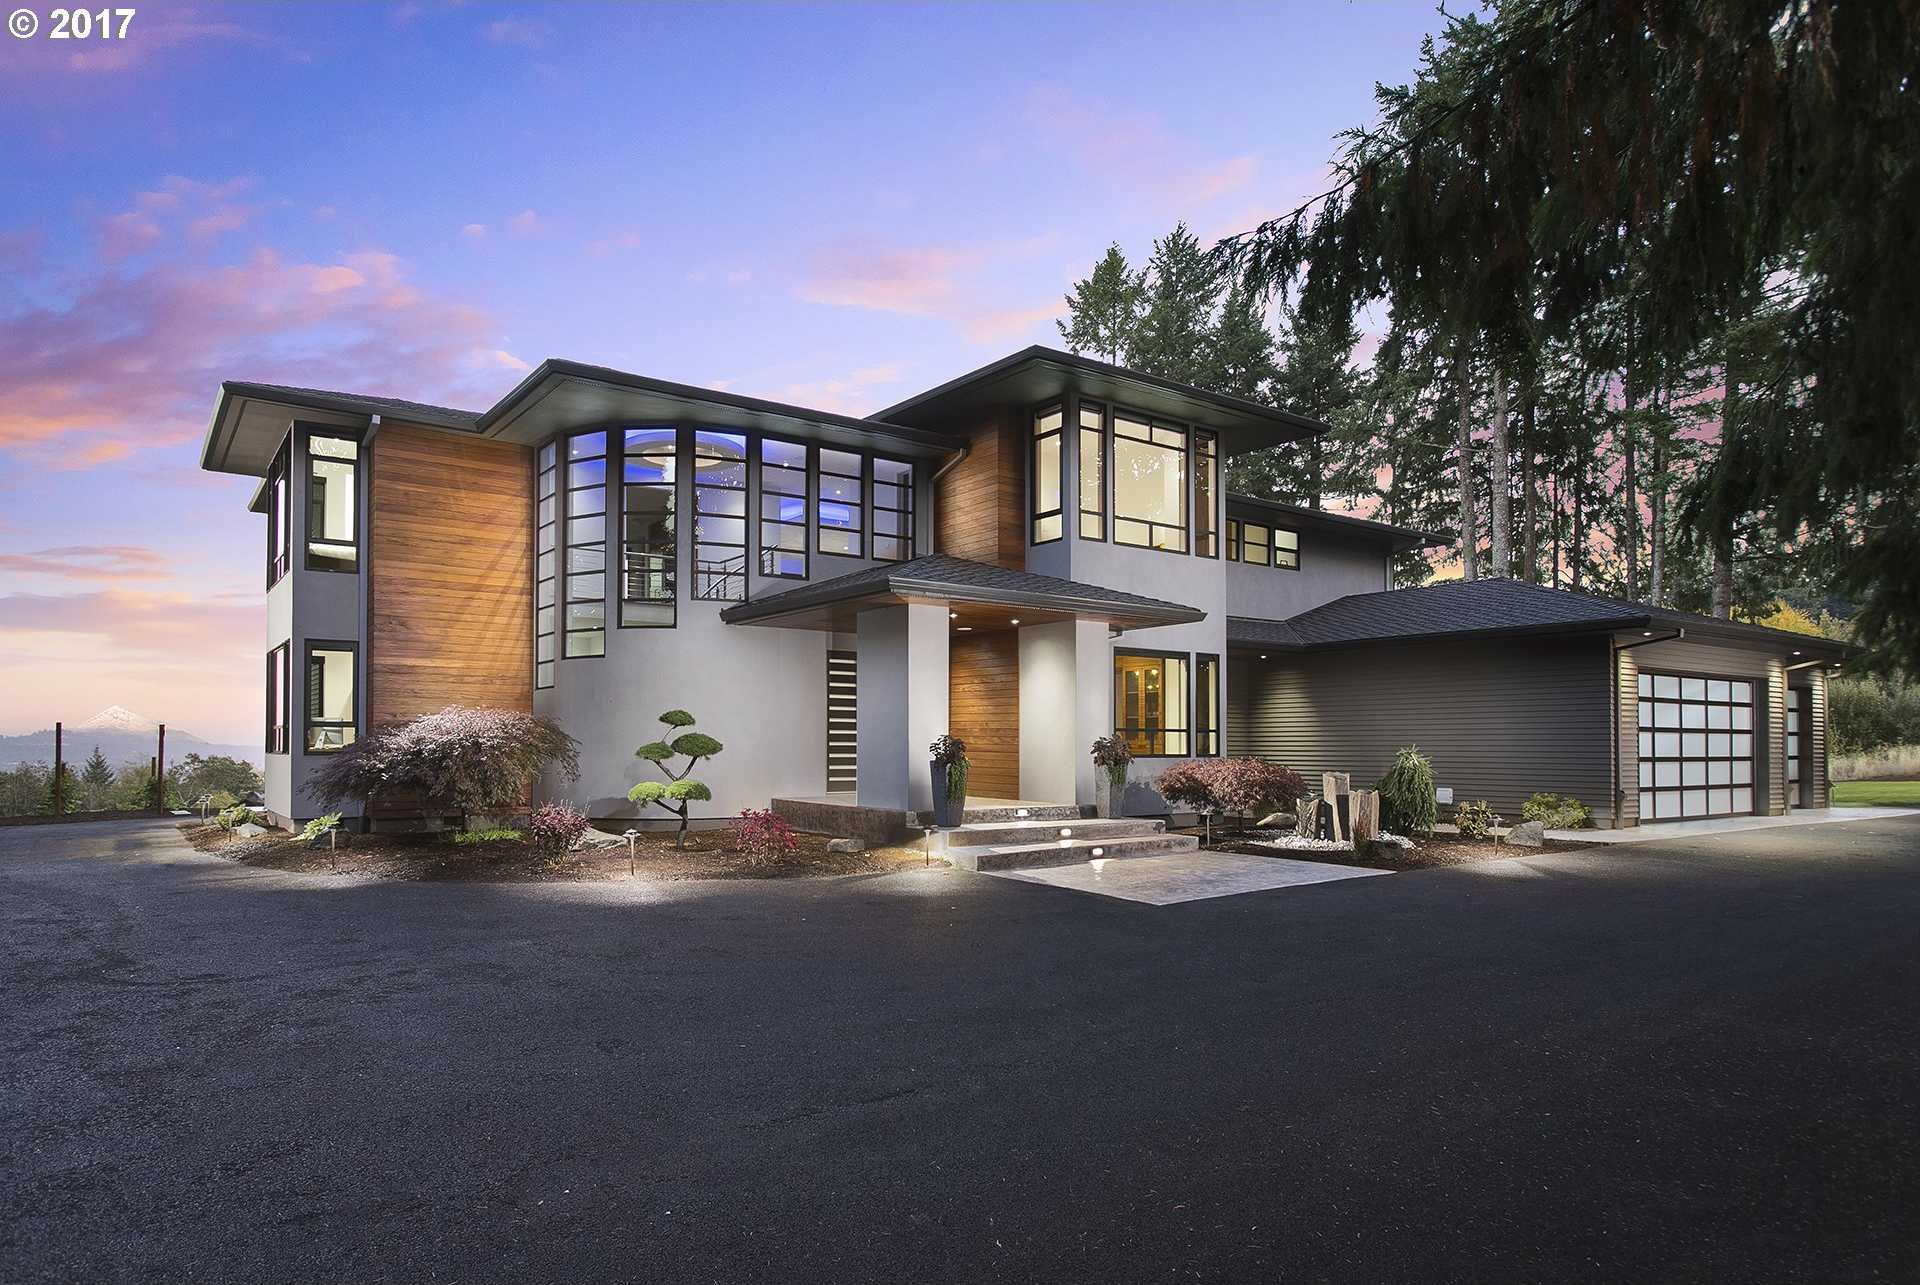 $2,950,000 - 4Br/6Ba -  for Sale in Beaverton